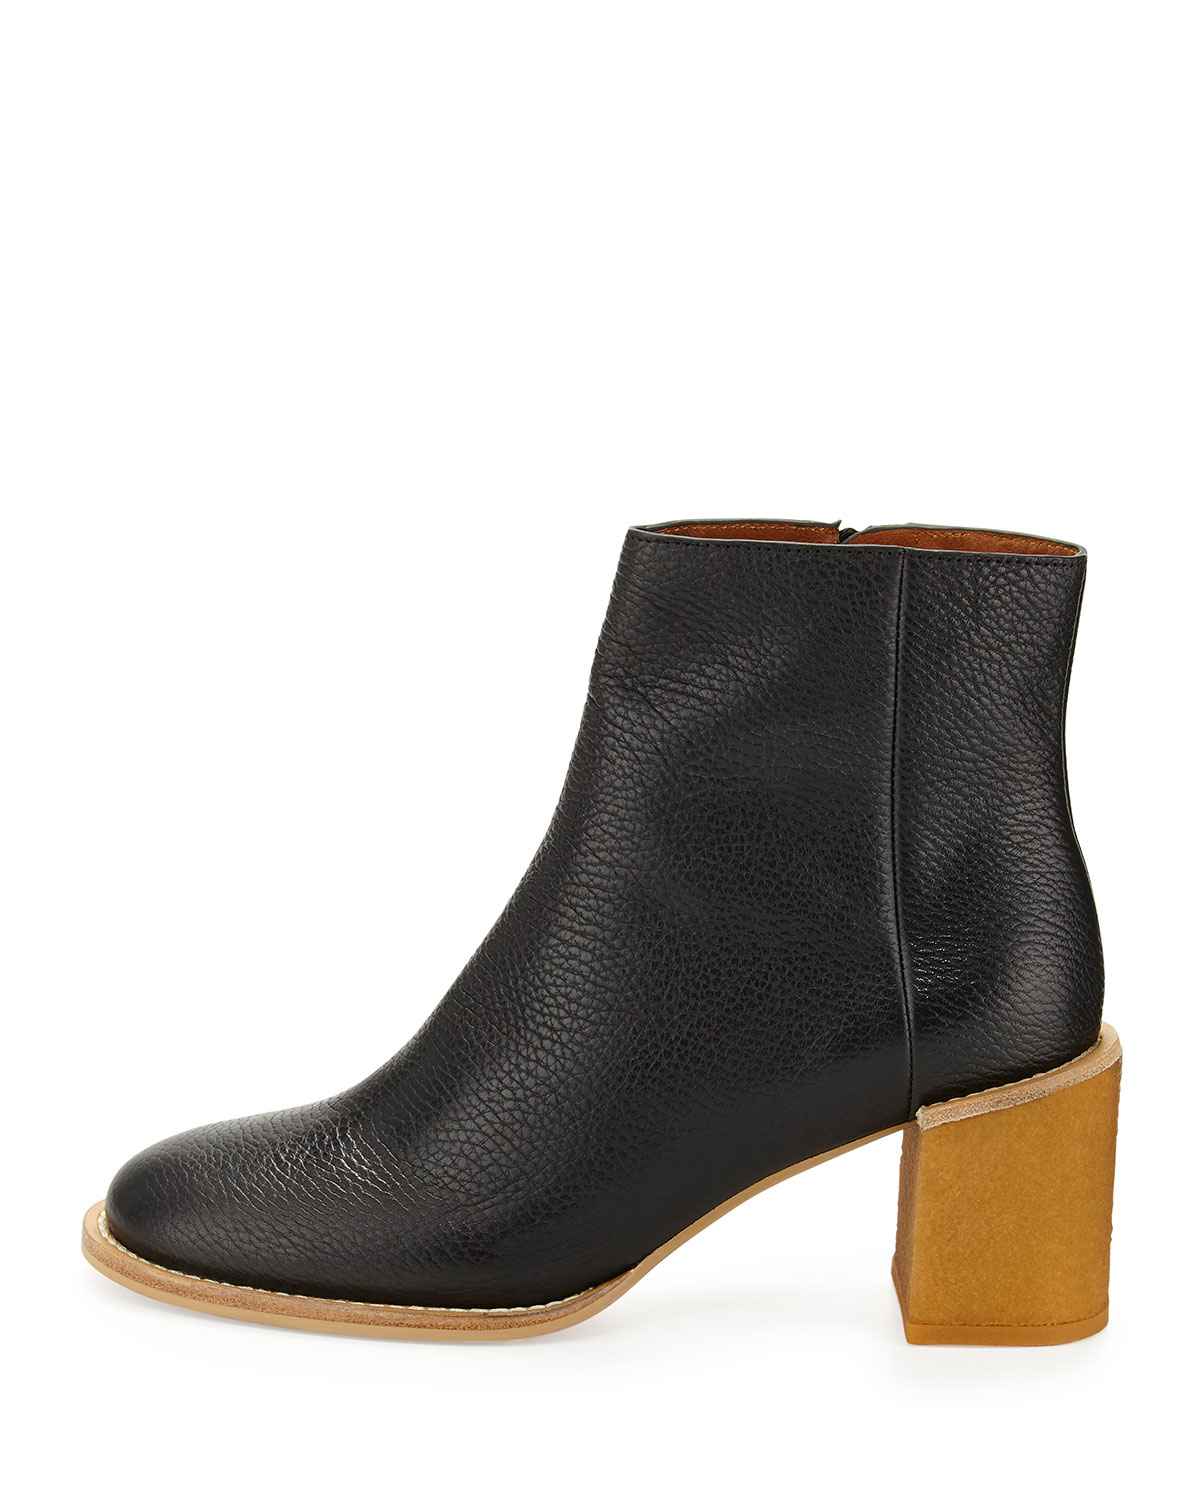 lyst see by chlo keira leather ankle boot in black. Black Bedroom Furniture Sets. Home Design Ideas